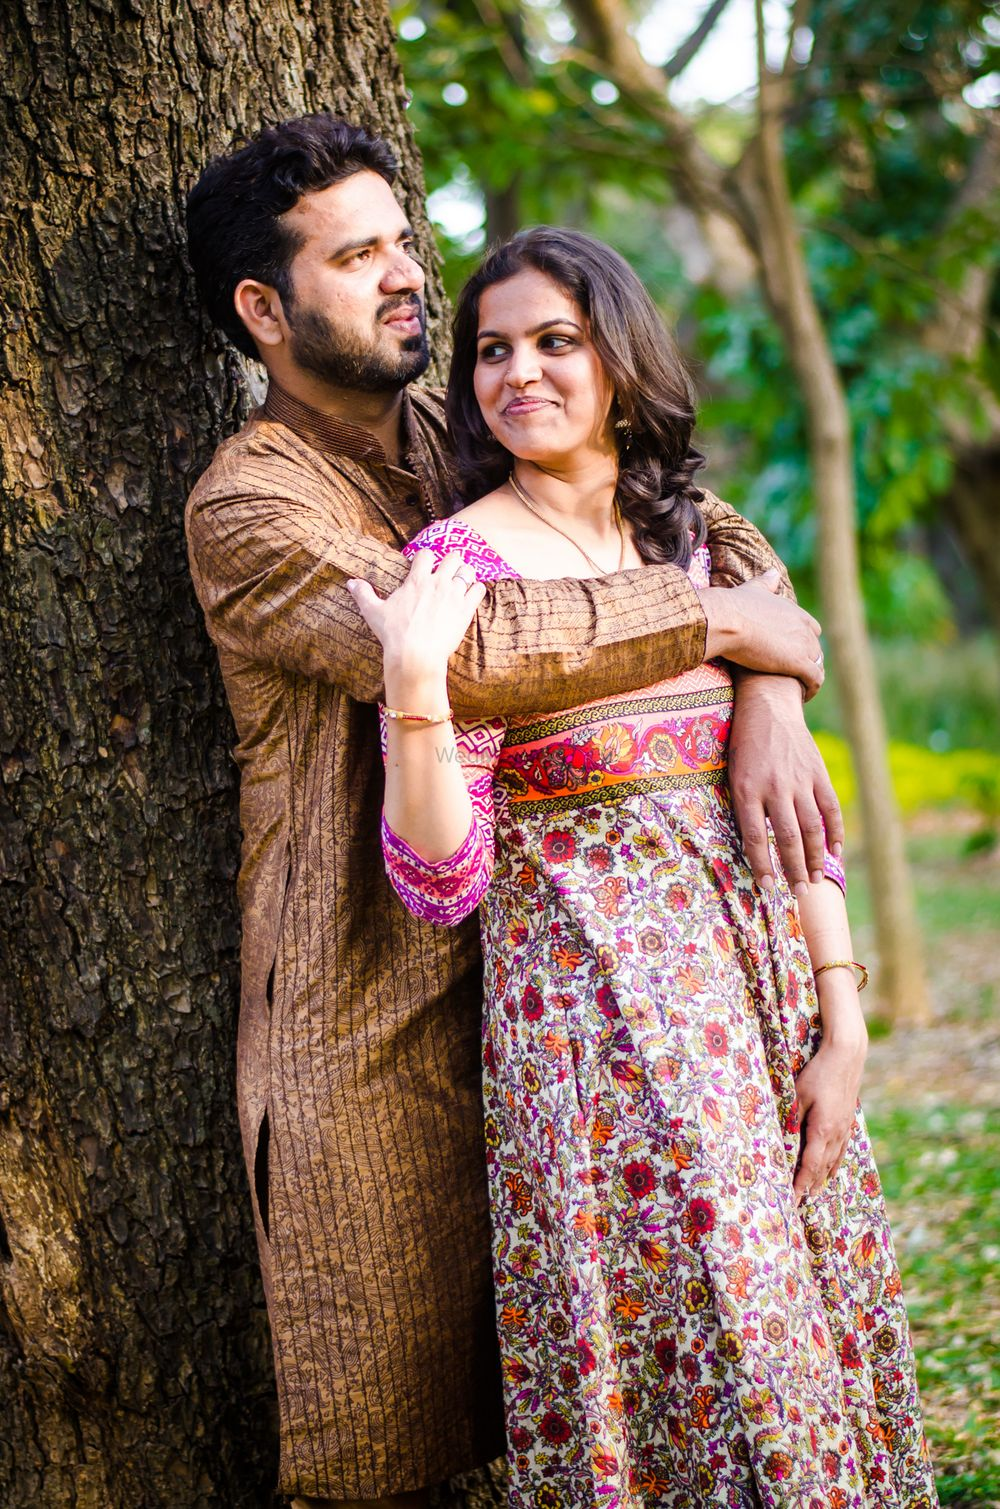 Photo From Anusha + Dhananjay - By Stories by Swati Chauhan